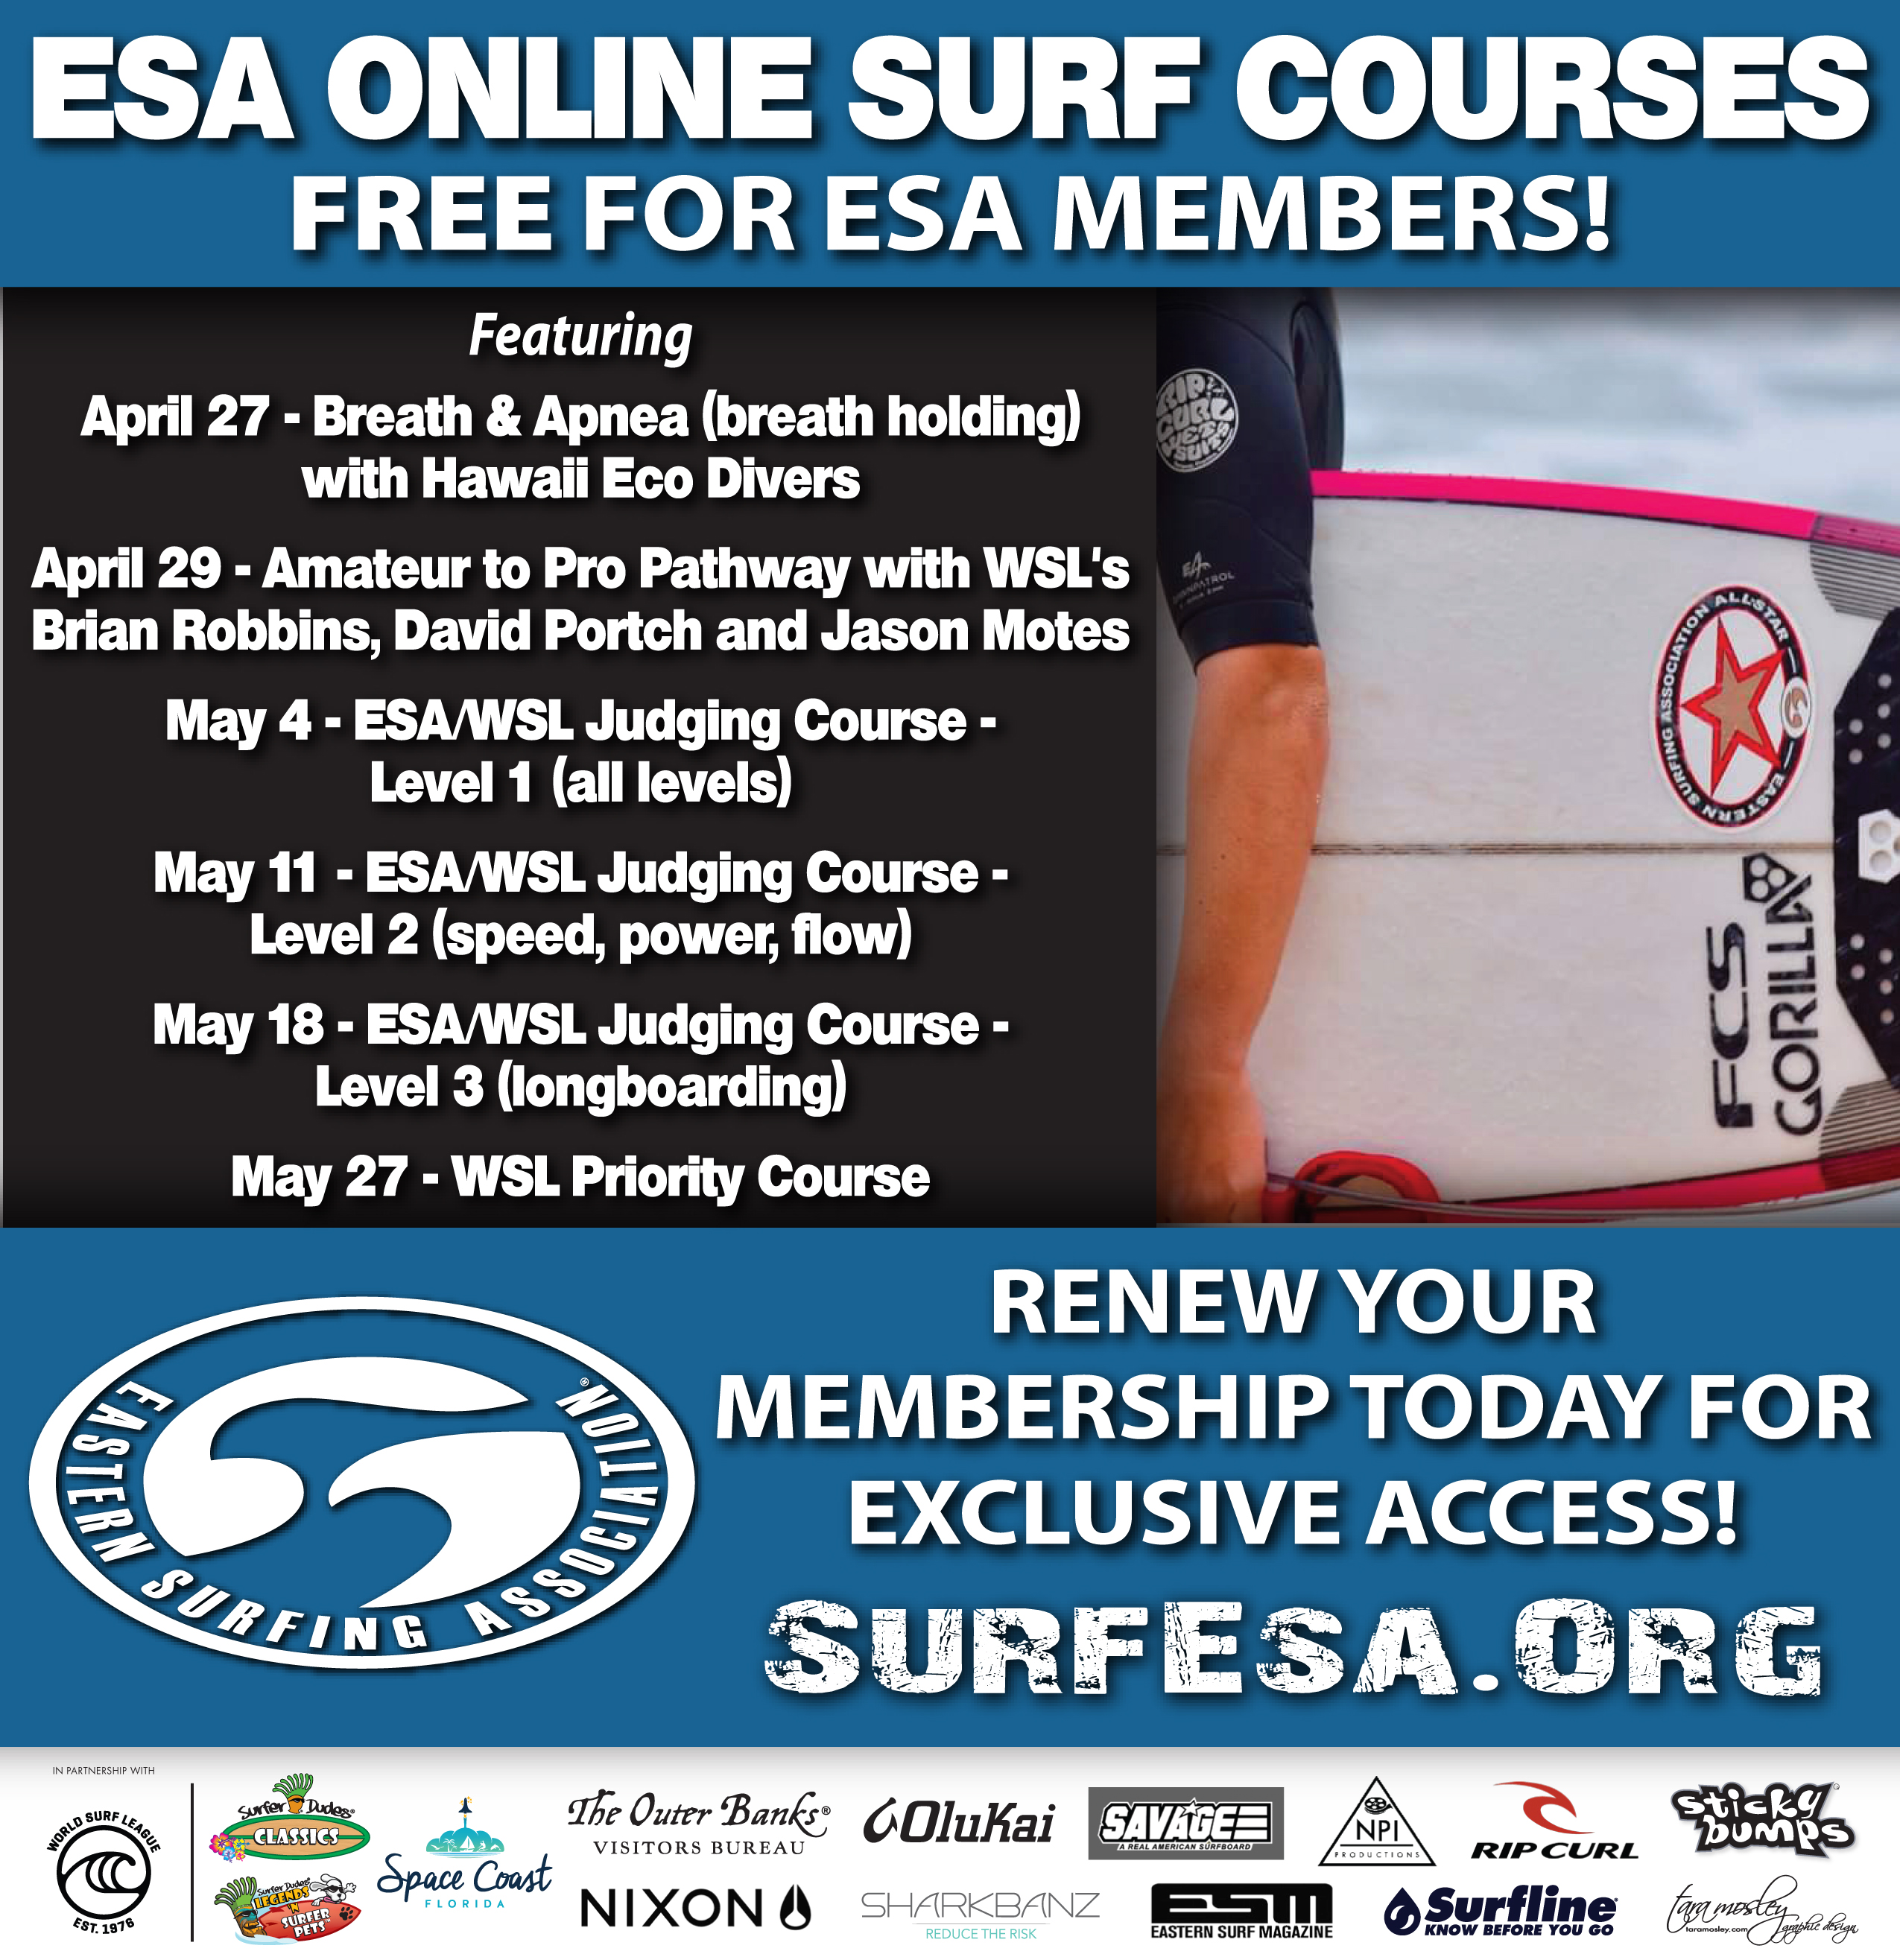 ESA offers FREE online surf courses to members